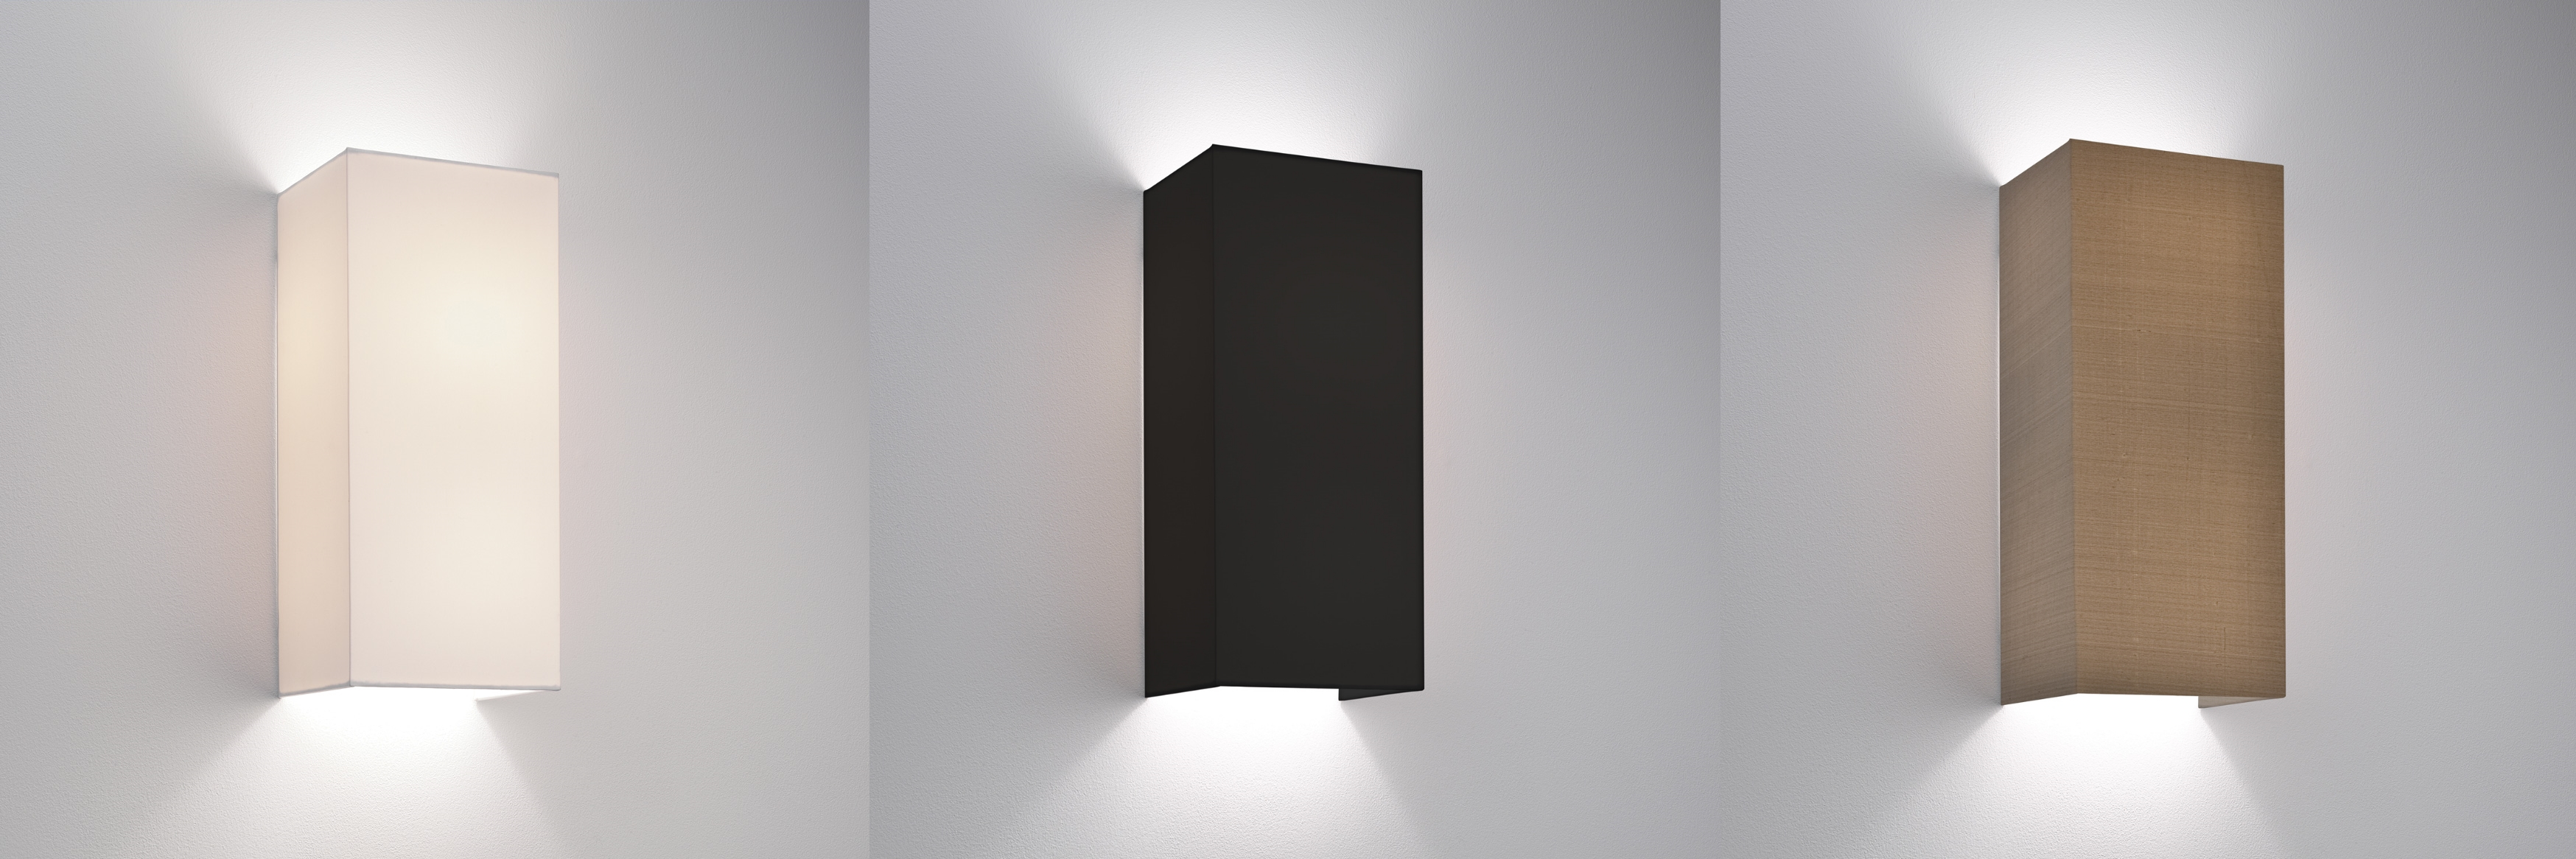 Astro Chuo 380 fabric wall light shade 2 x 60W E27 white